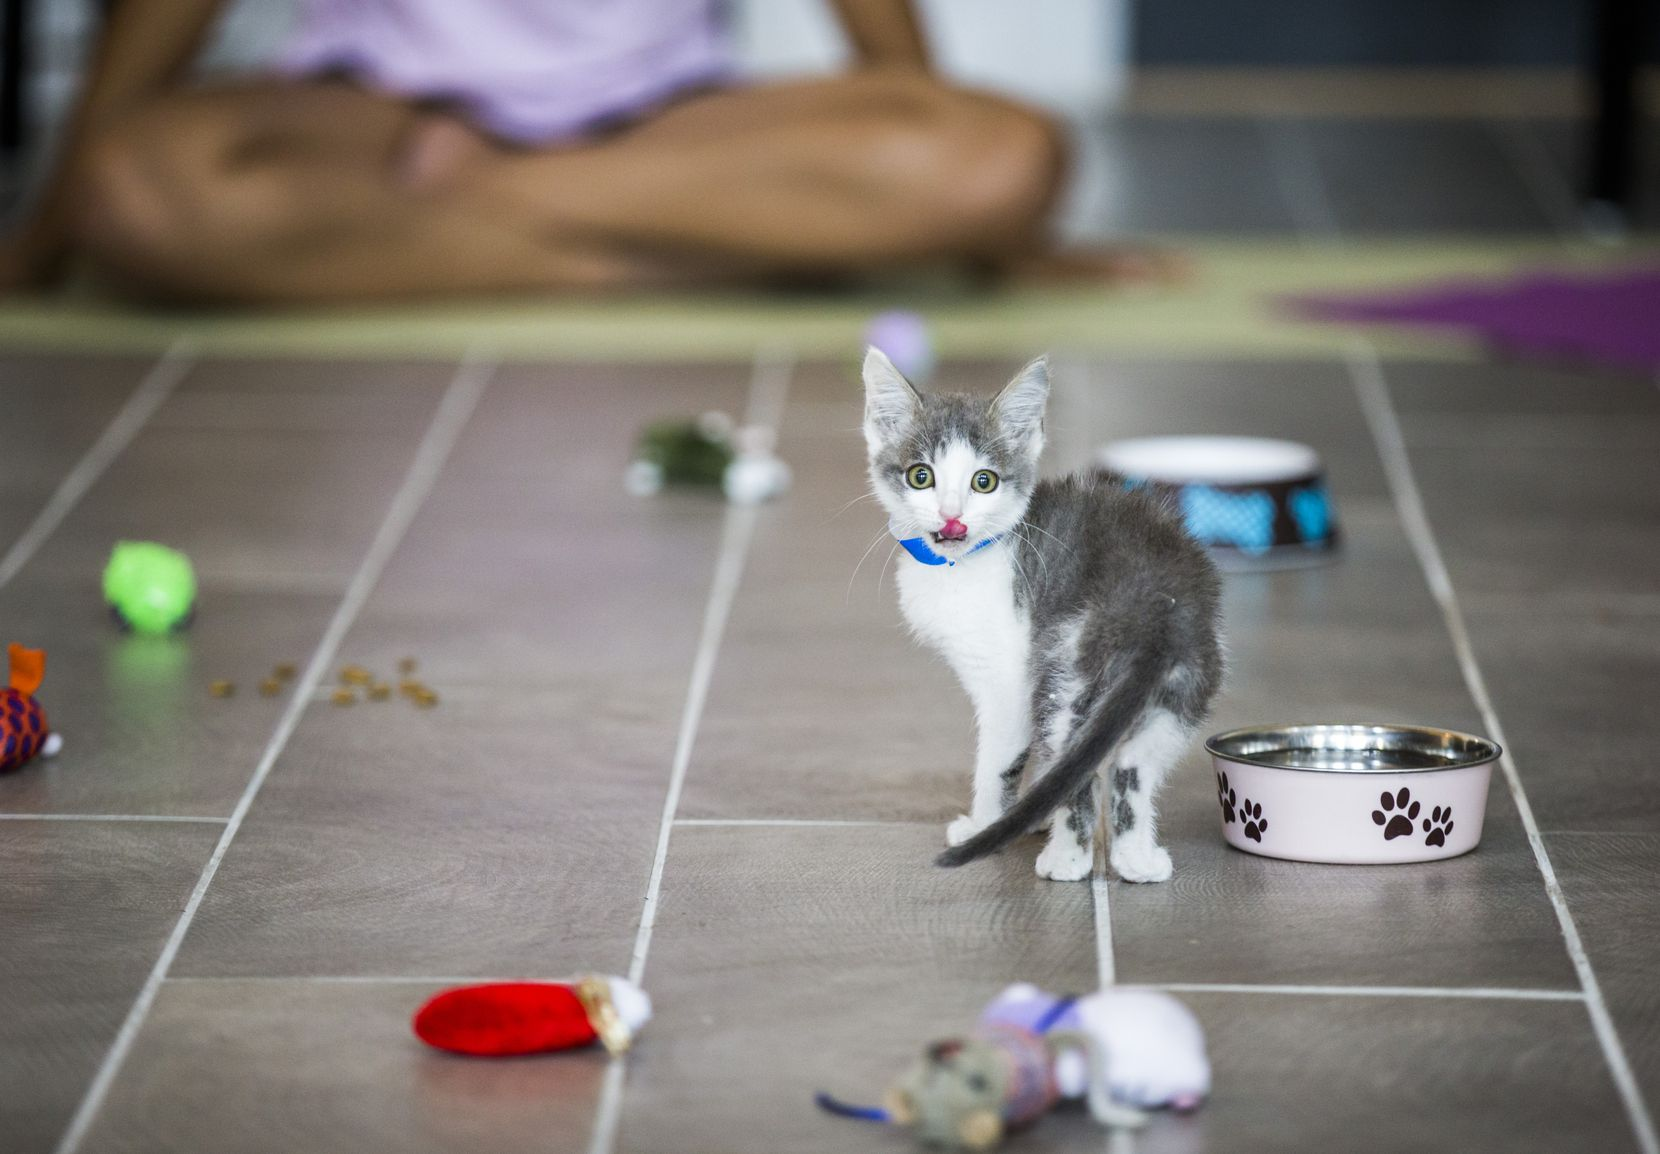 A kitten licked its lips during a yoga class.